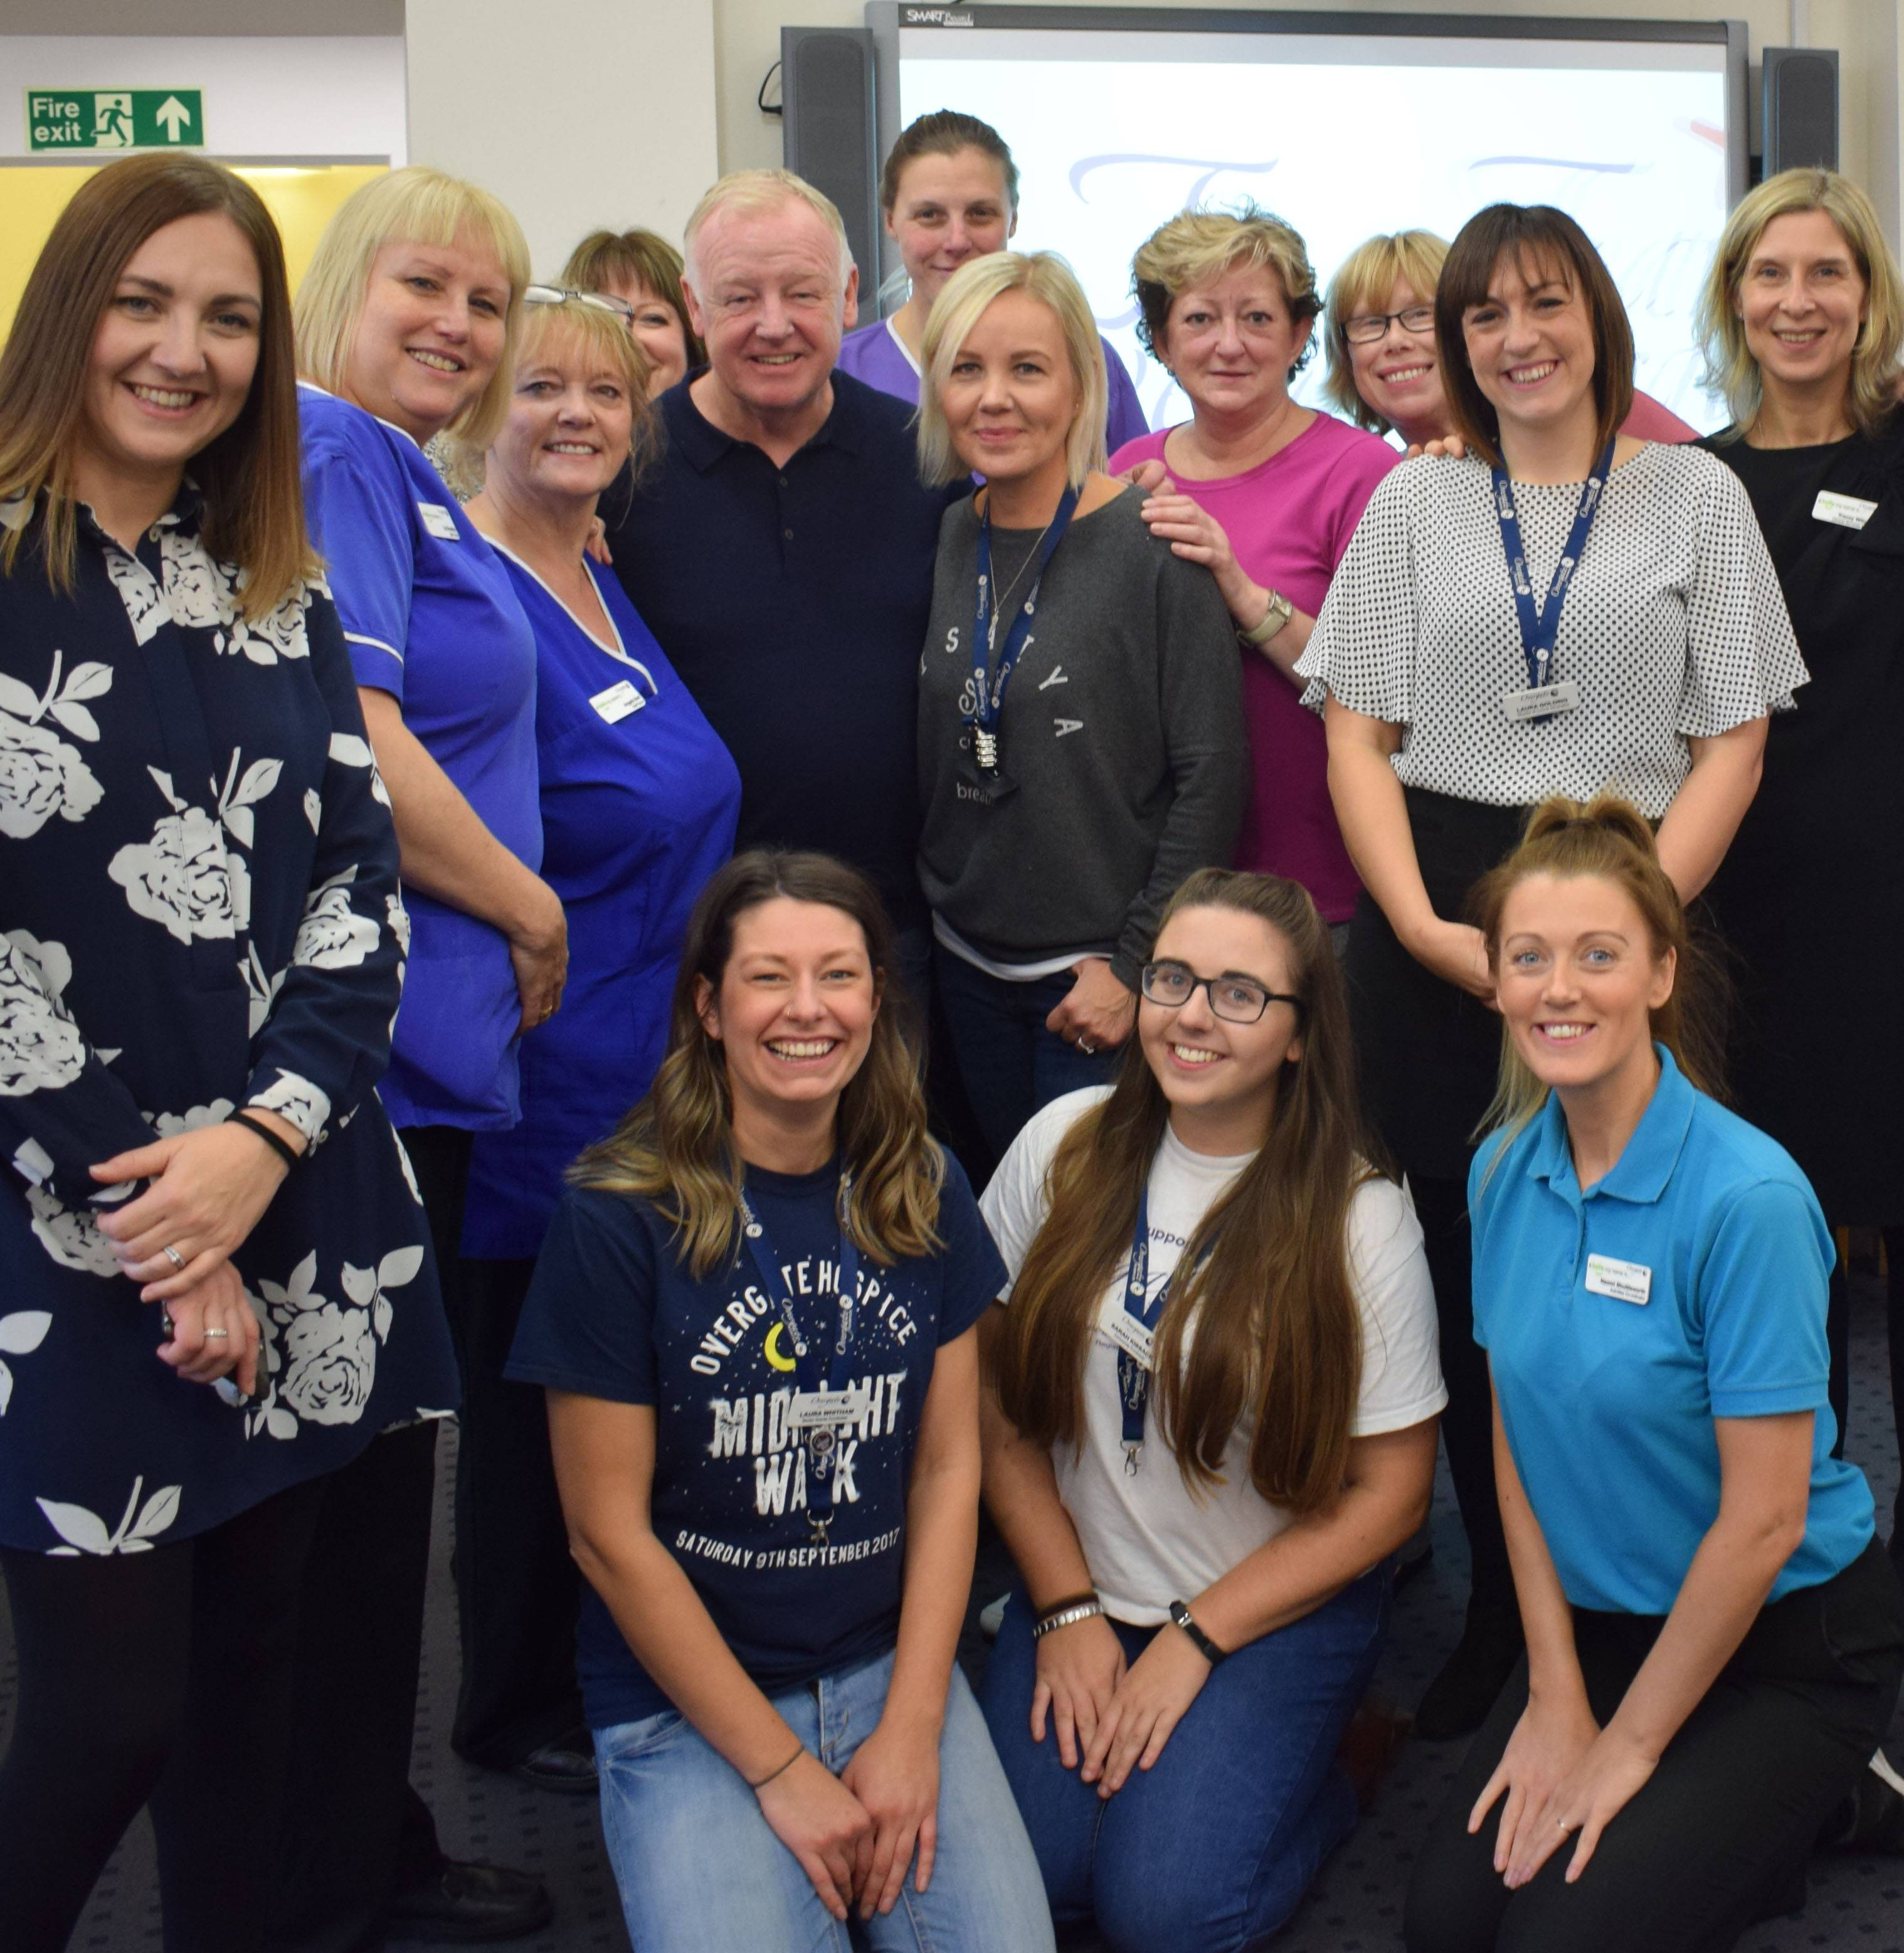 Les Dennis visits the Hospice